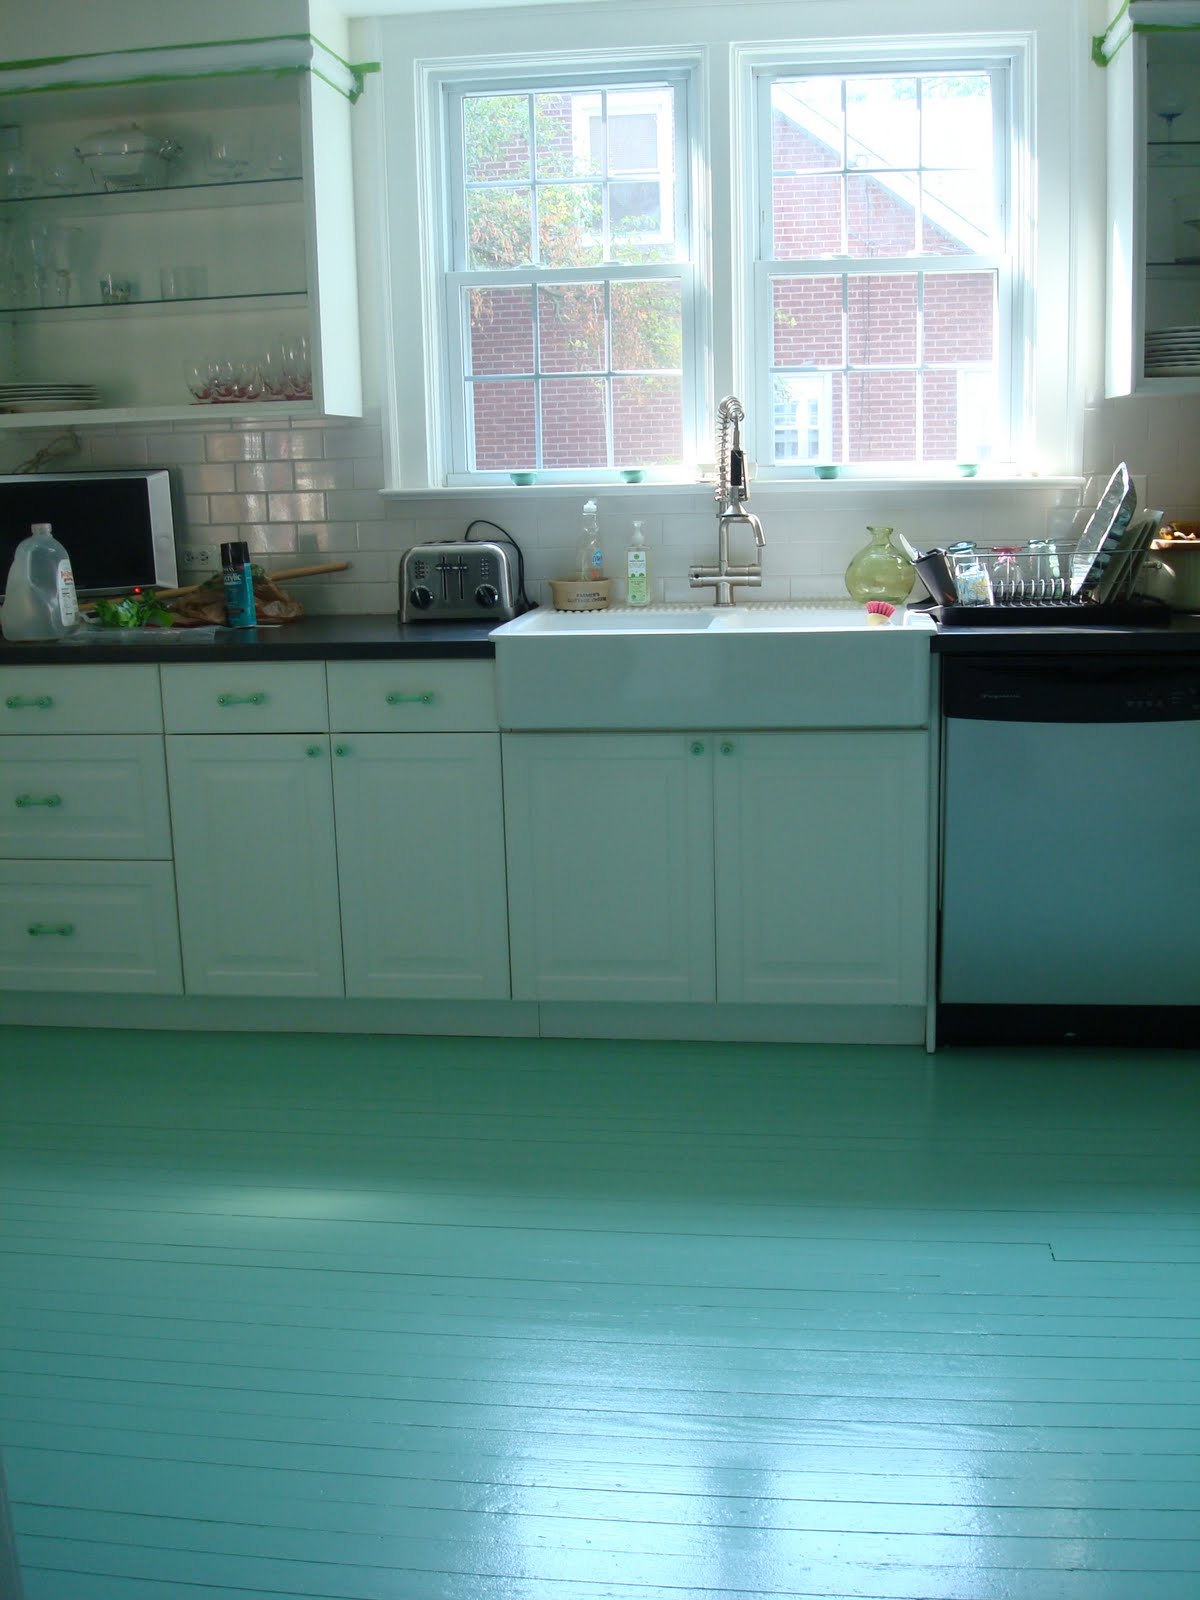 Diy Painted Kitchen Floor For 50 Showit Blog